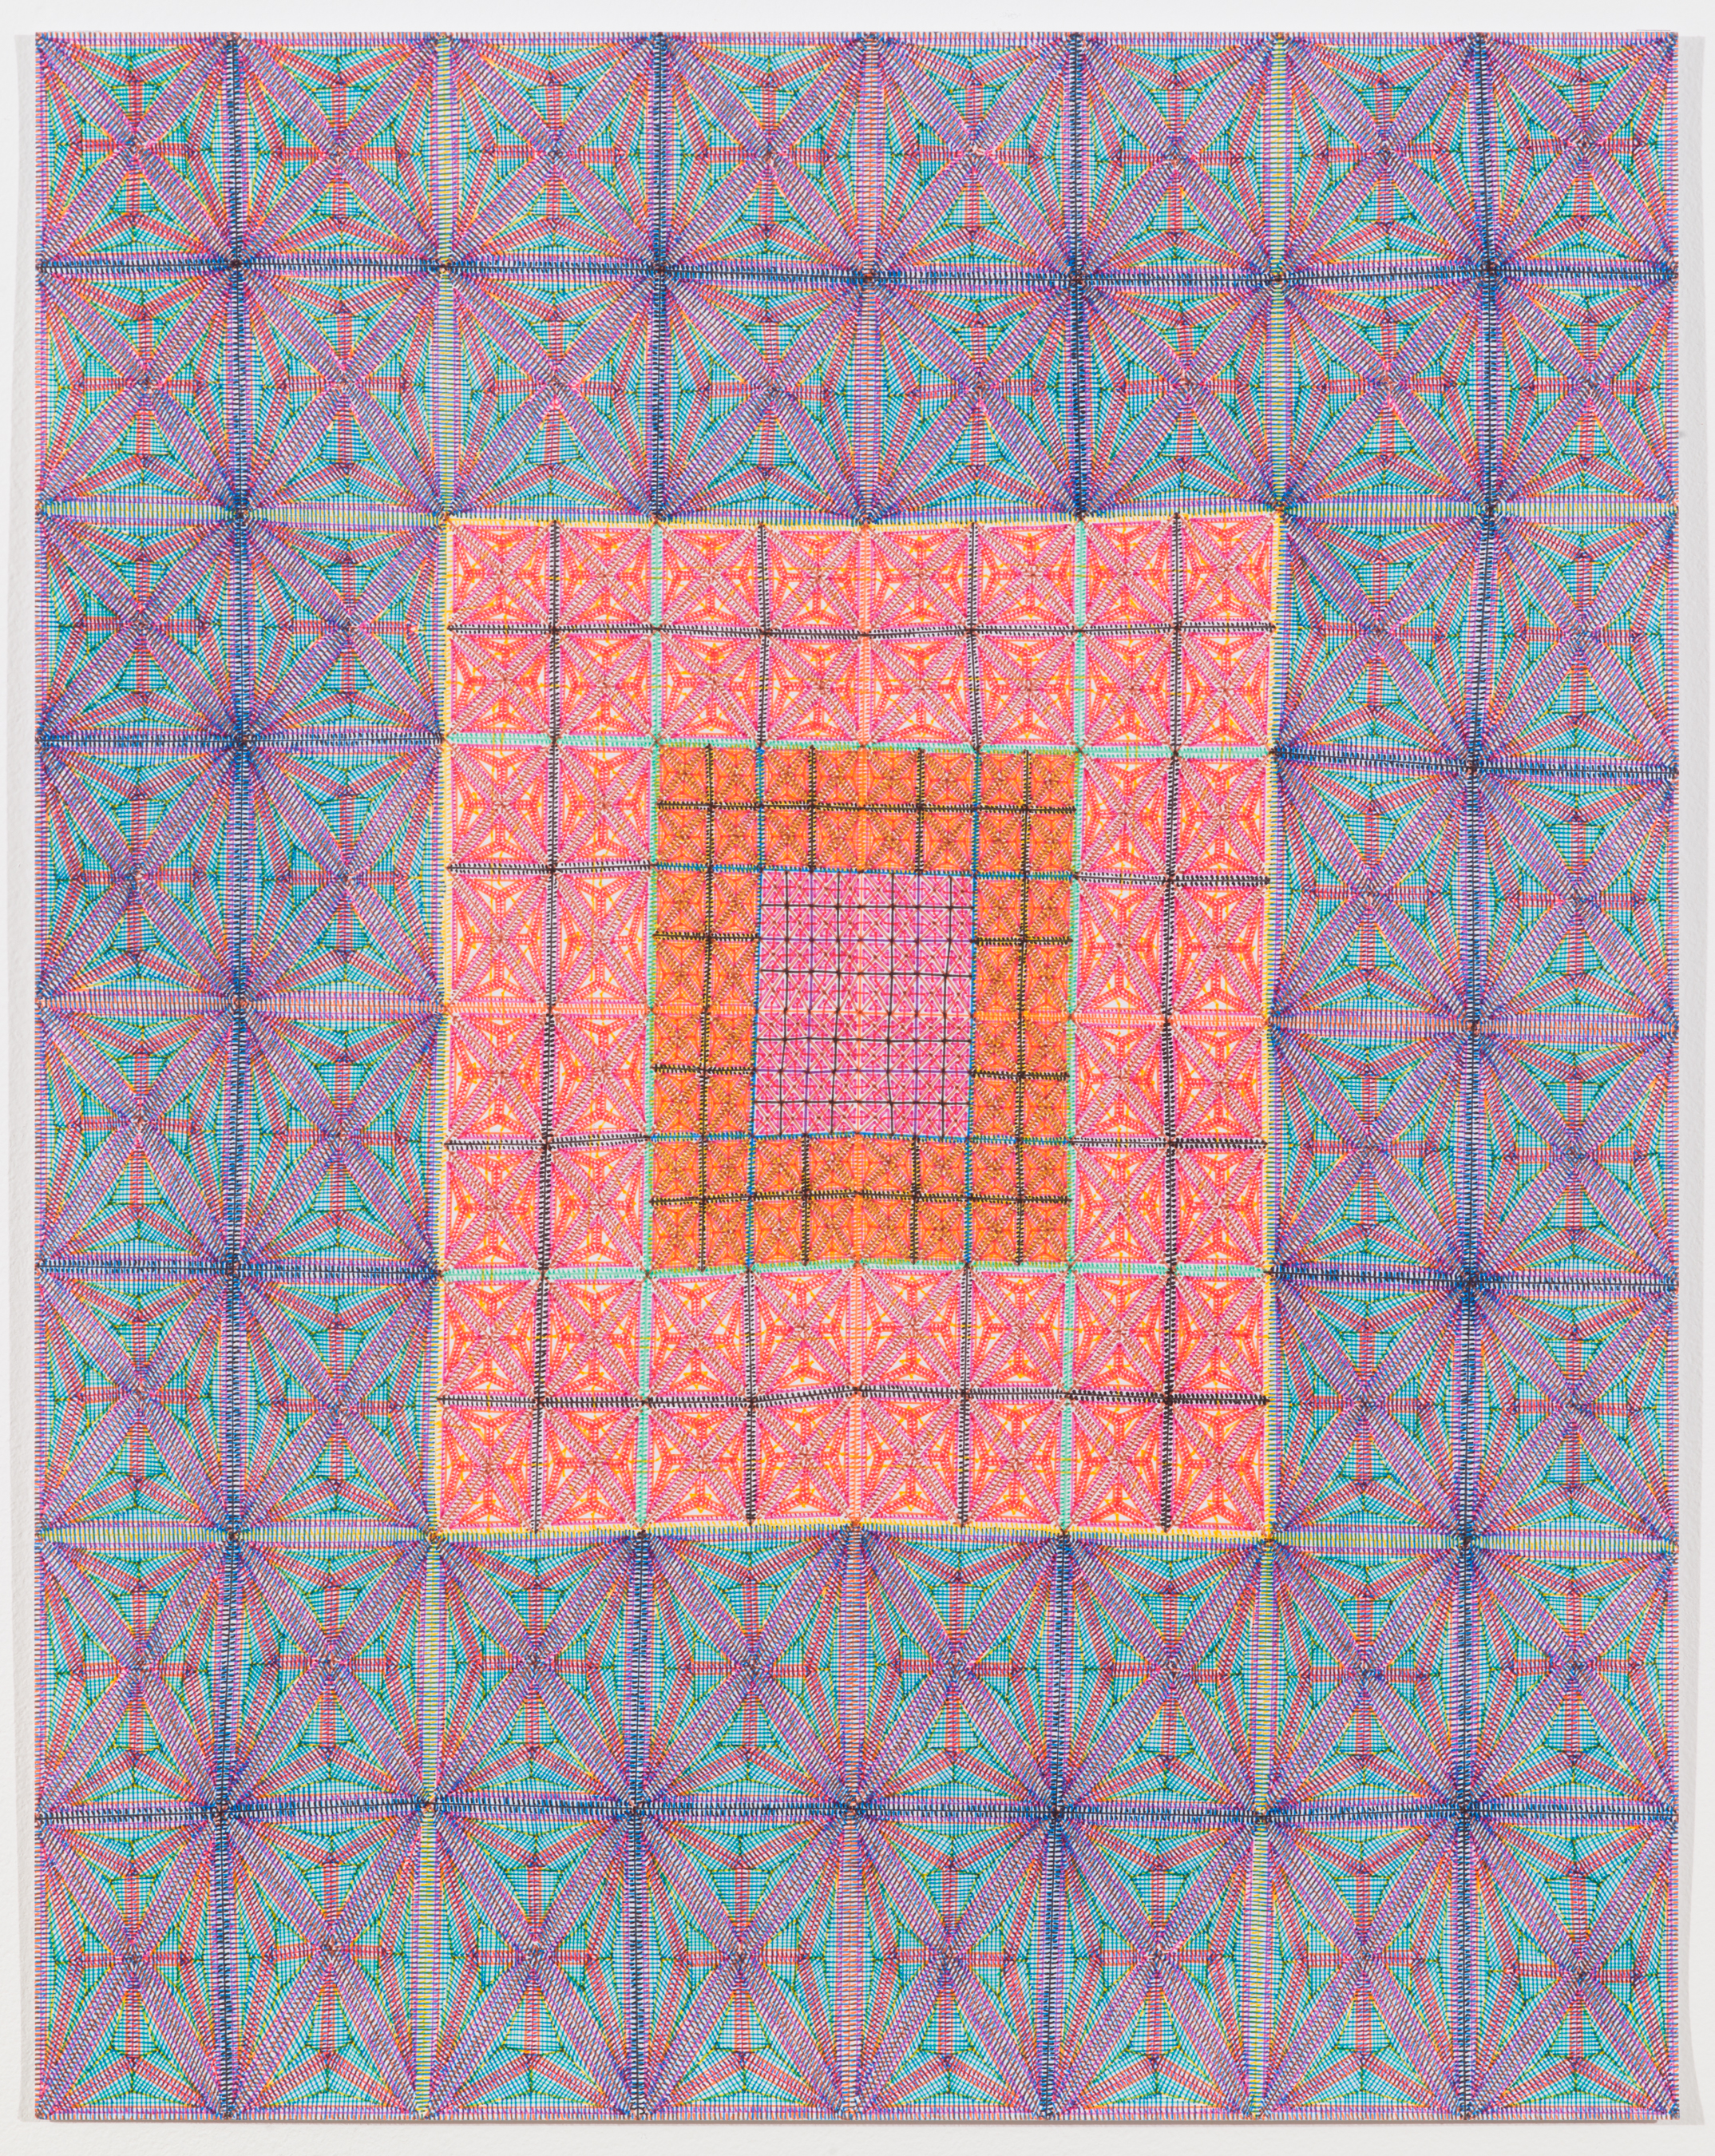 """Book 5 Volume 1 Page 32.2, 2018 in """"Richard Tinkler: Drawings"""" at 56 Henry."""